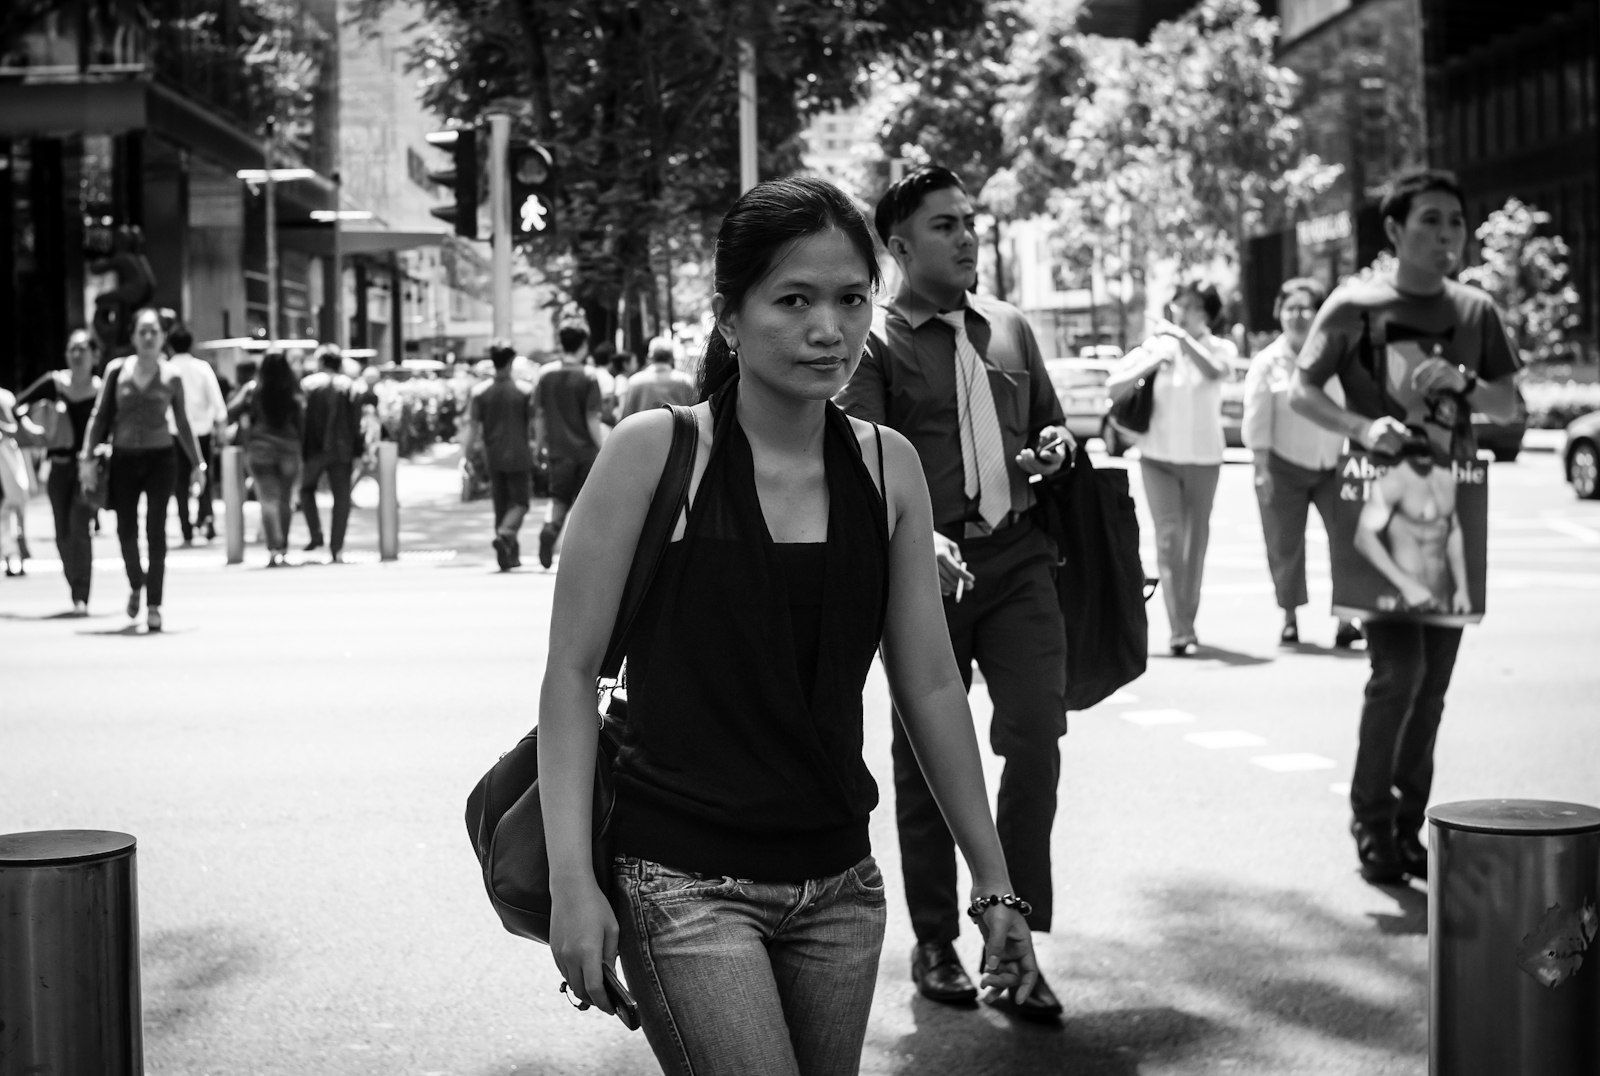 Street photography - passer-by looking at the camera